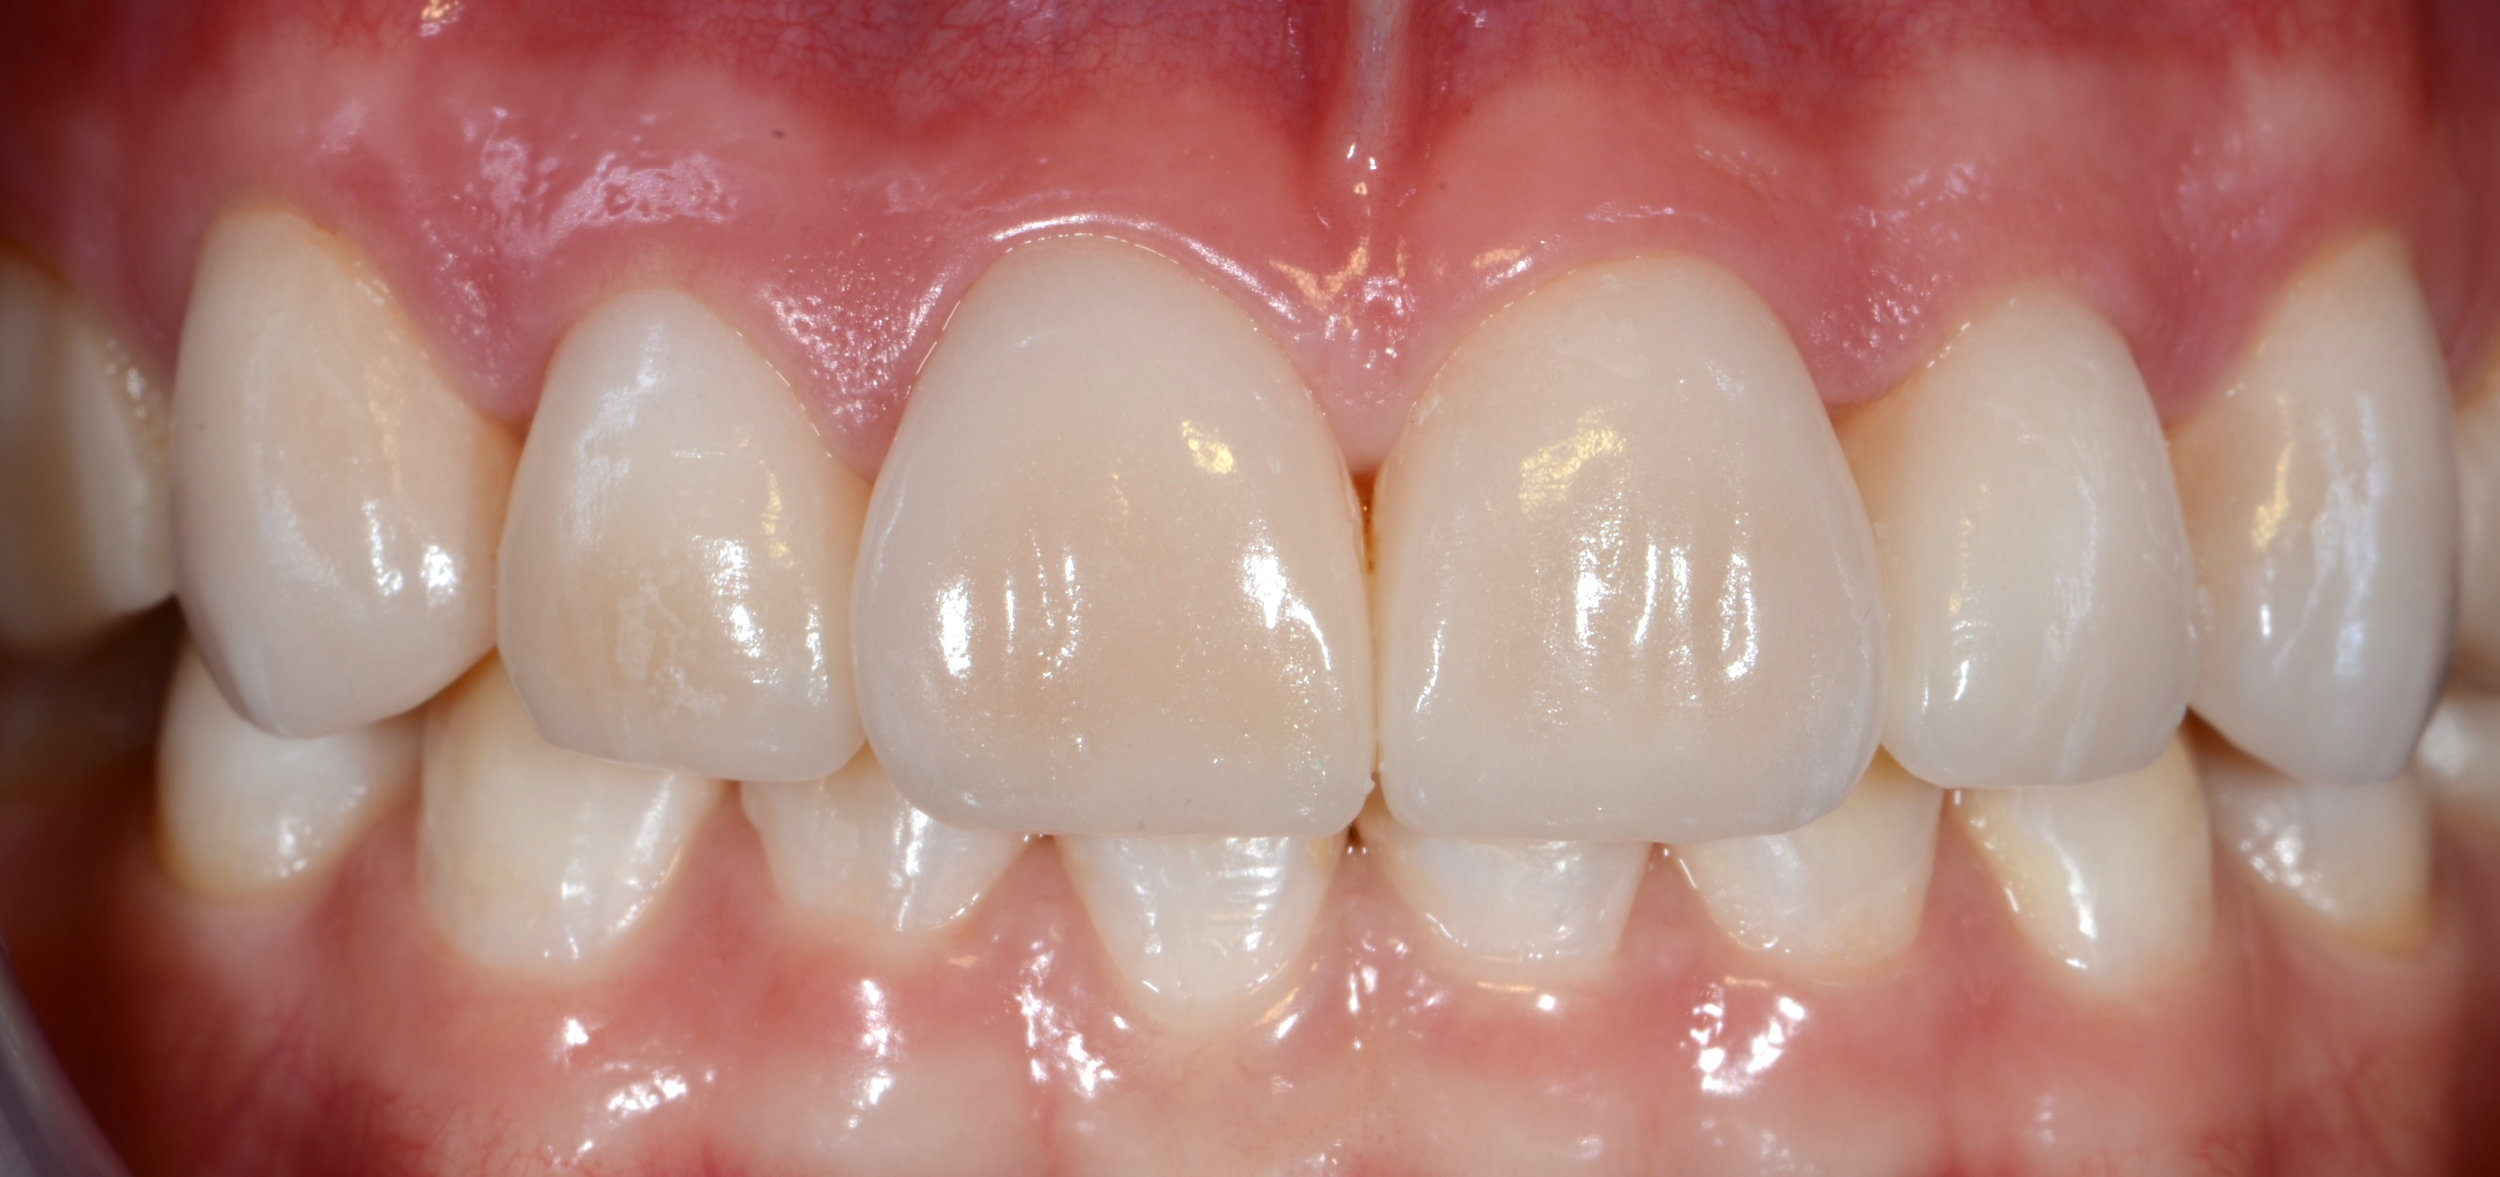 Porcelain Veneers - Porcelain veneers are thin shells of ceramic that bond directly to the front surfaces of the teeth.They have become increasingly popular due to their simplicity and versatility.